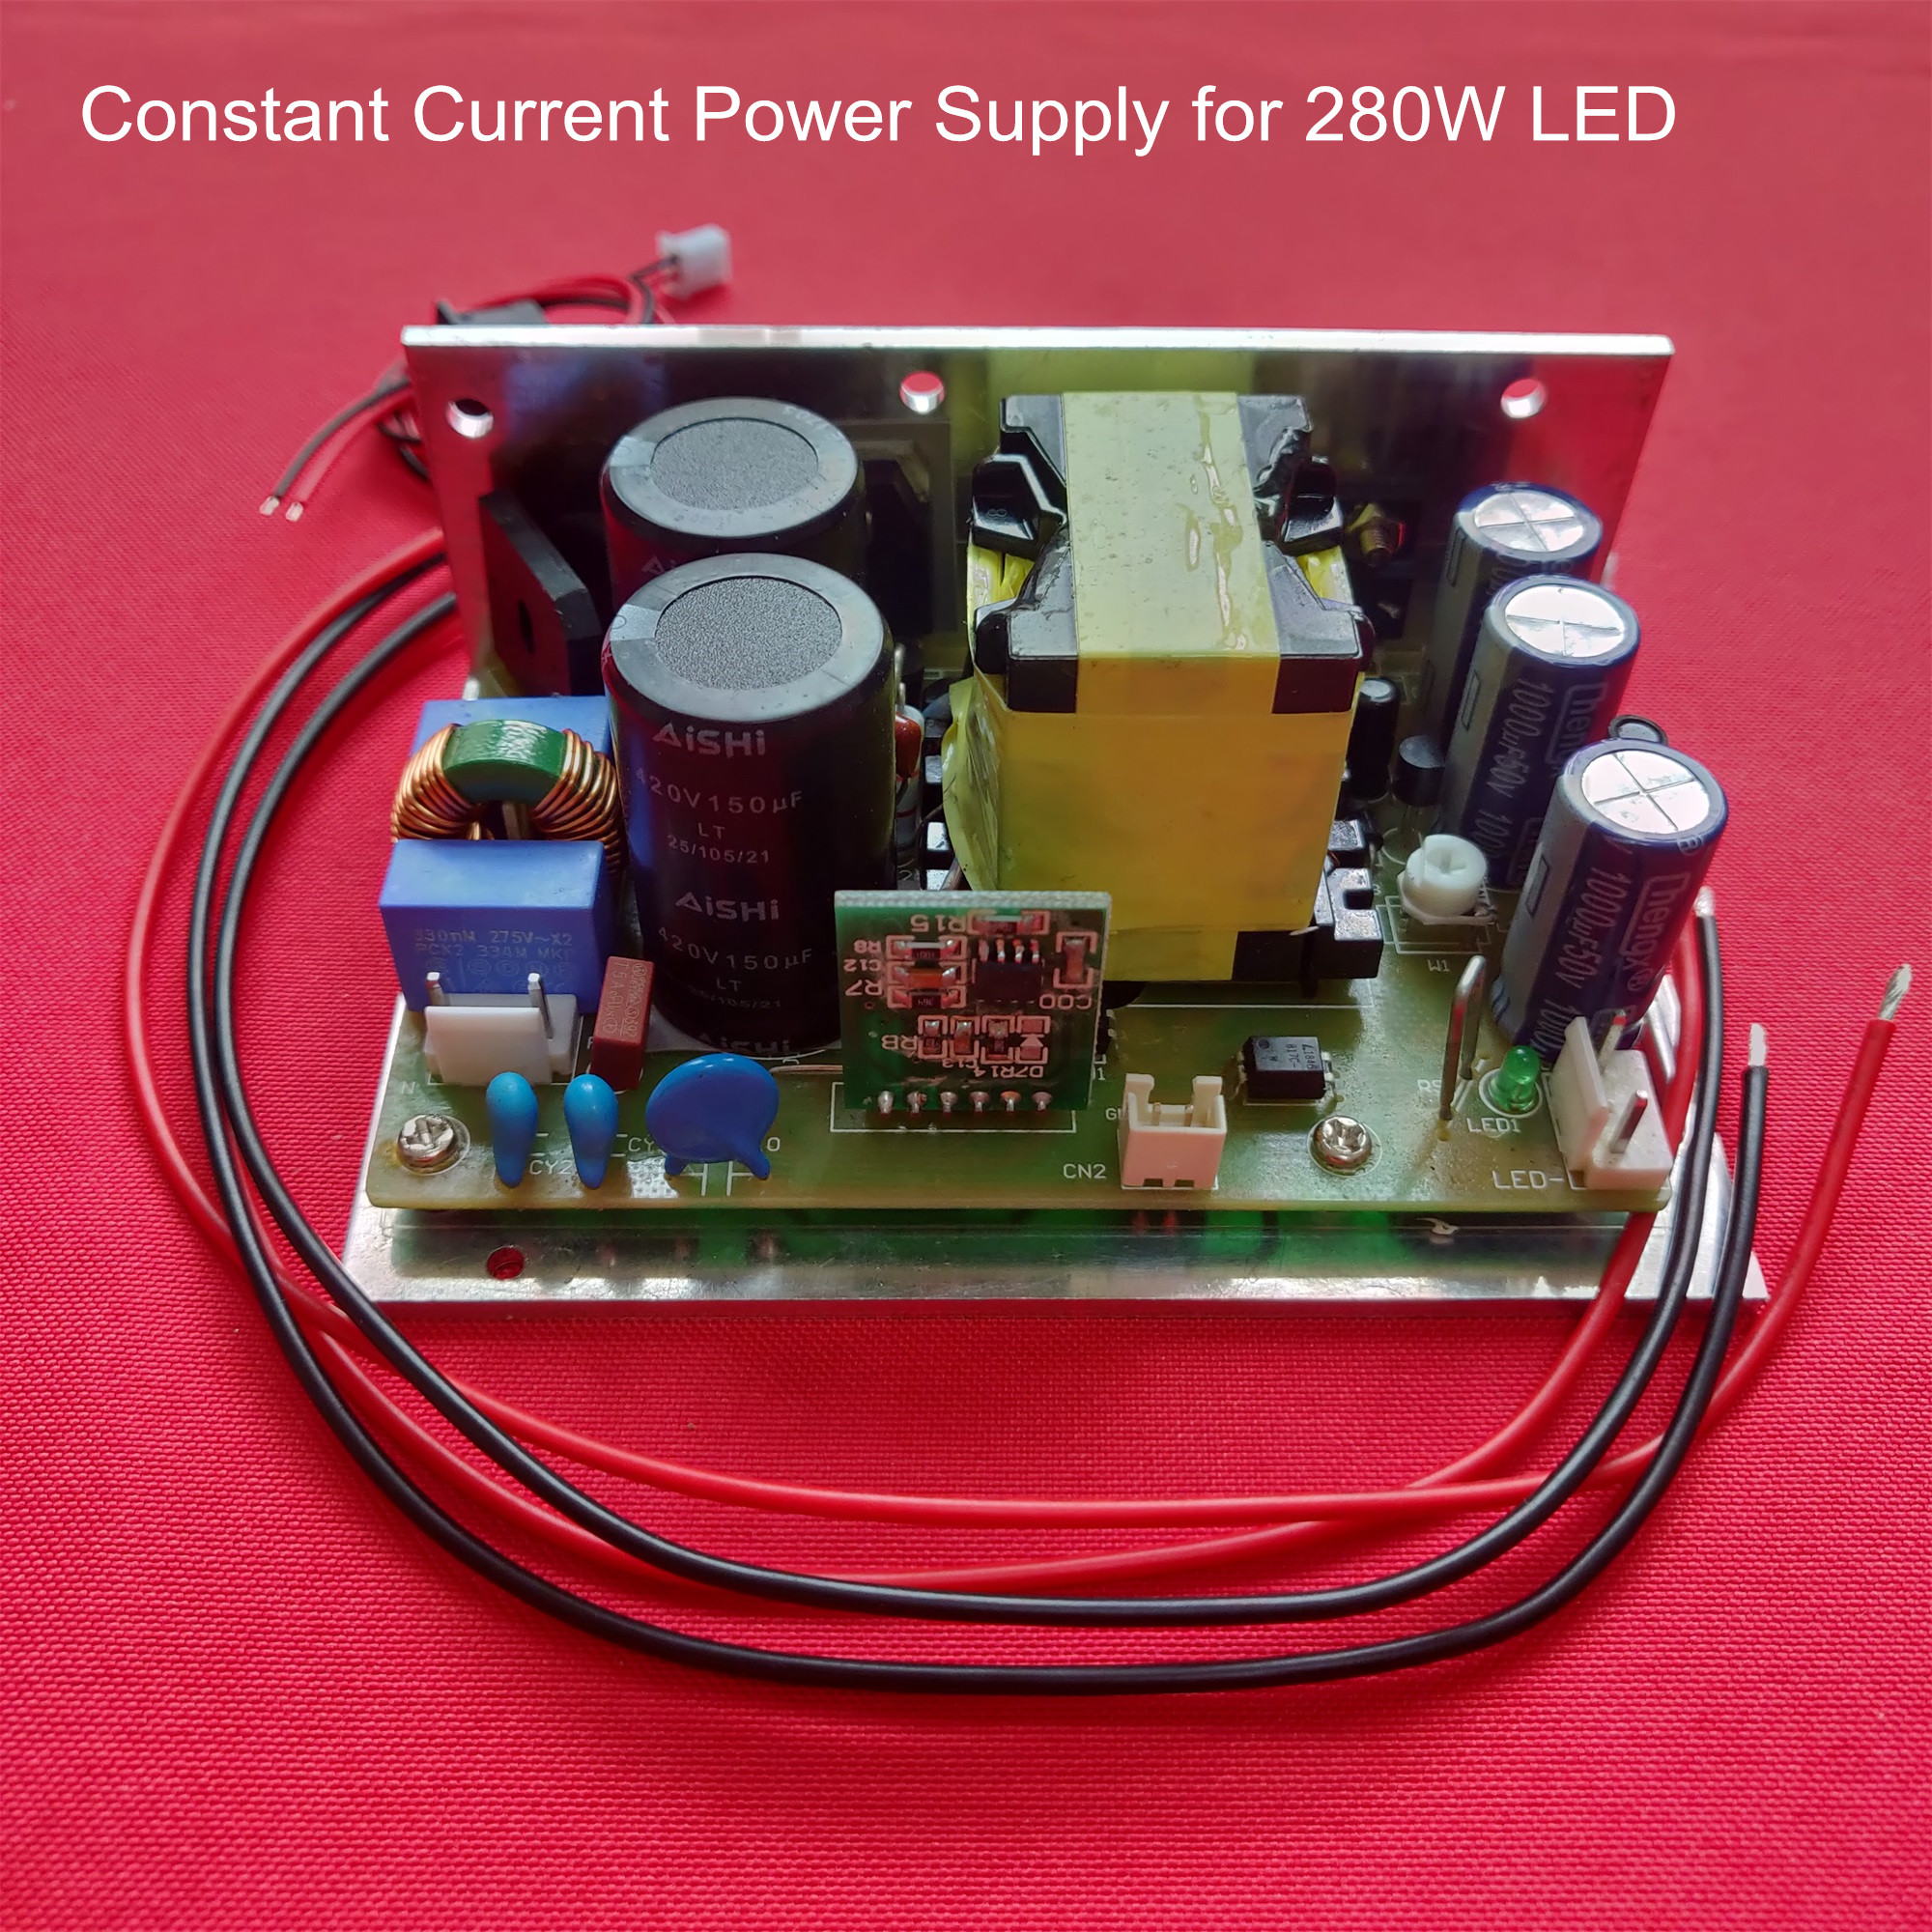 HD LED Projector/projection 1080p Diy Constant Current Power Supply For Led 280W With Overload Protection 45V